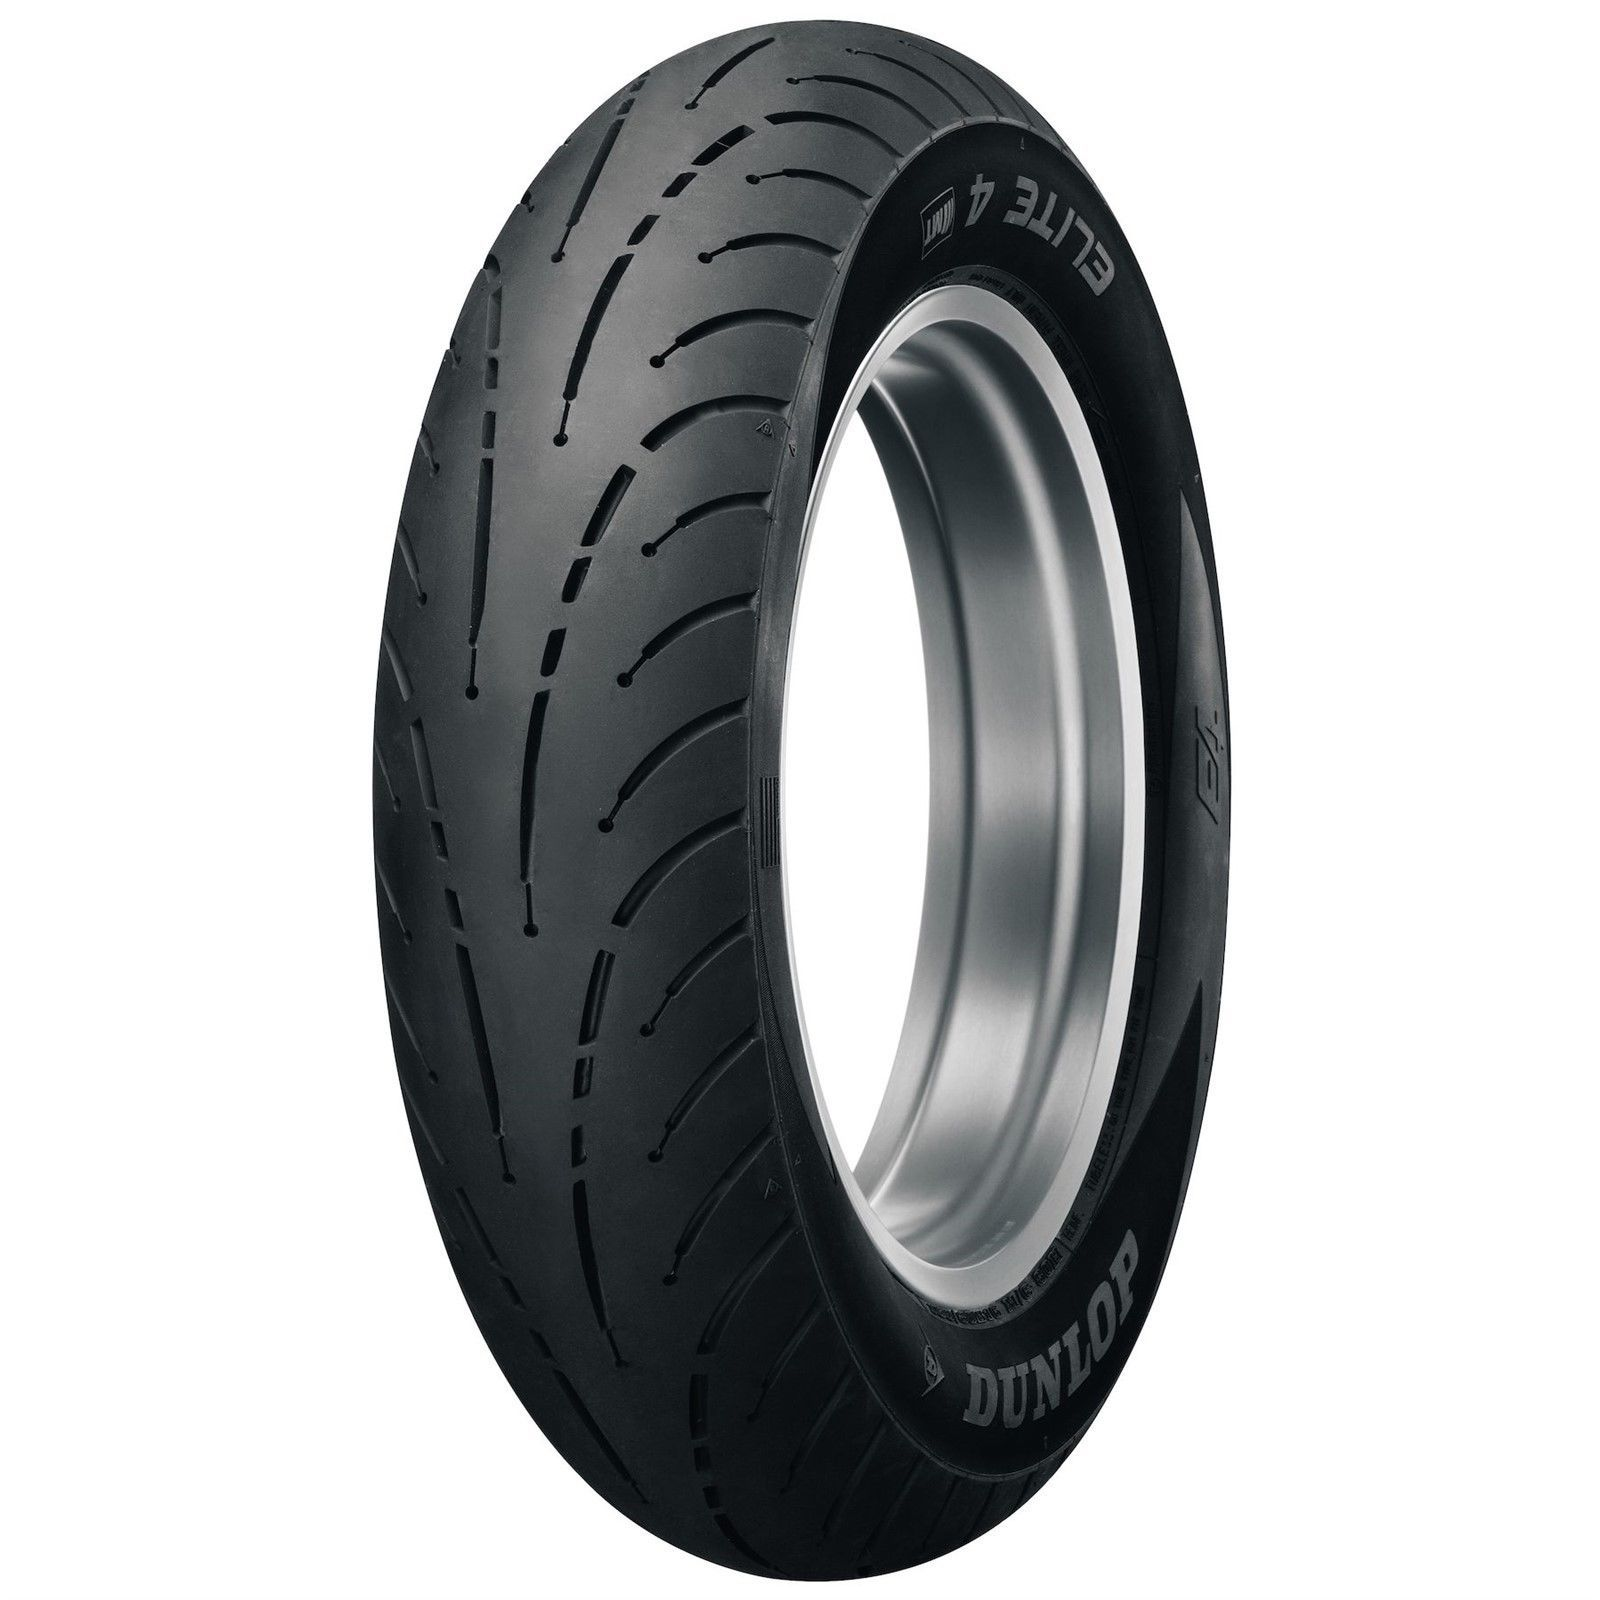 New Dunlop Elite 4 180/70R-16 Radial Rear Motorcycle Tire 77H High Mileage